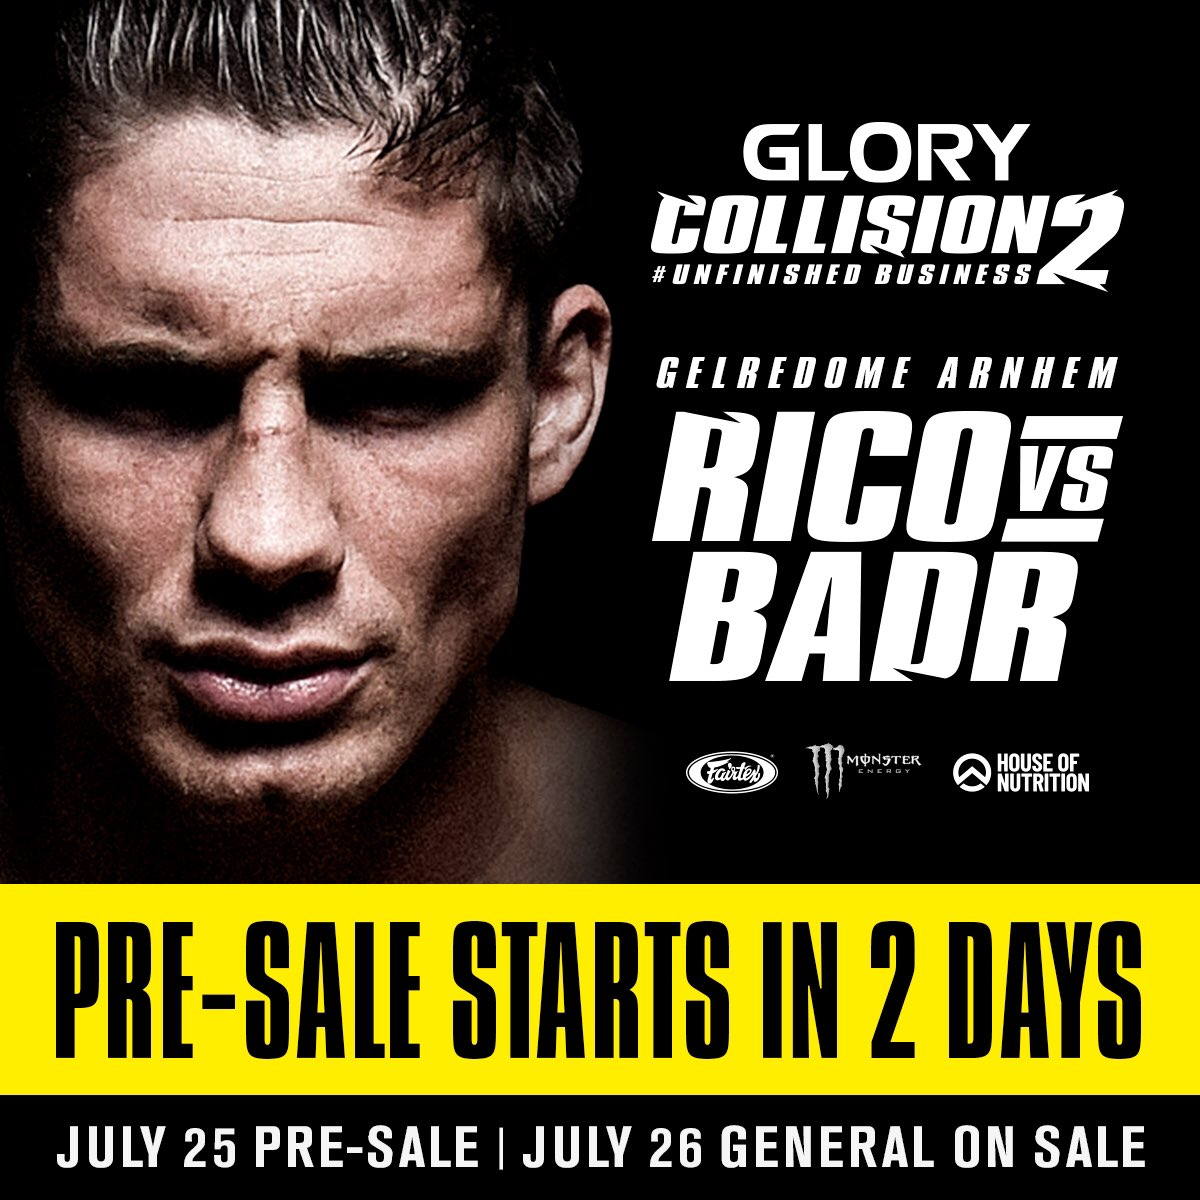 RT: GLORY_WS The #COLLISION2 pre-sale is LIVE in two days! Register at http://glorykickboxing.com